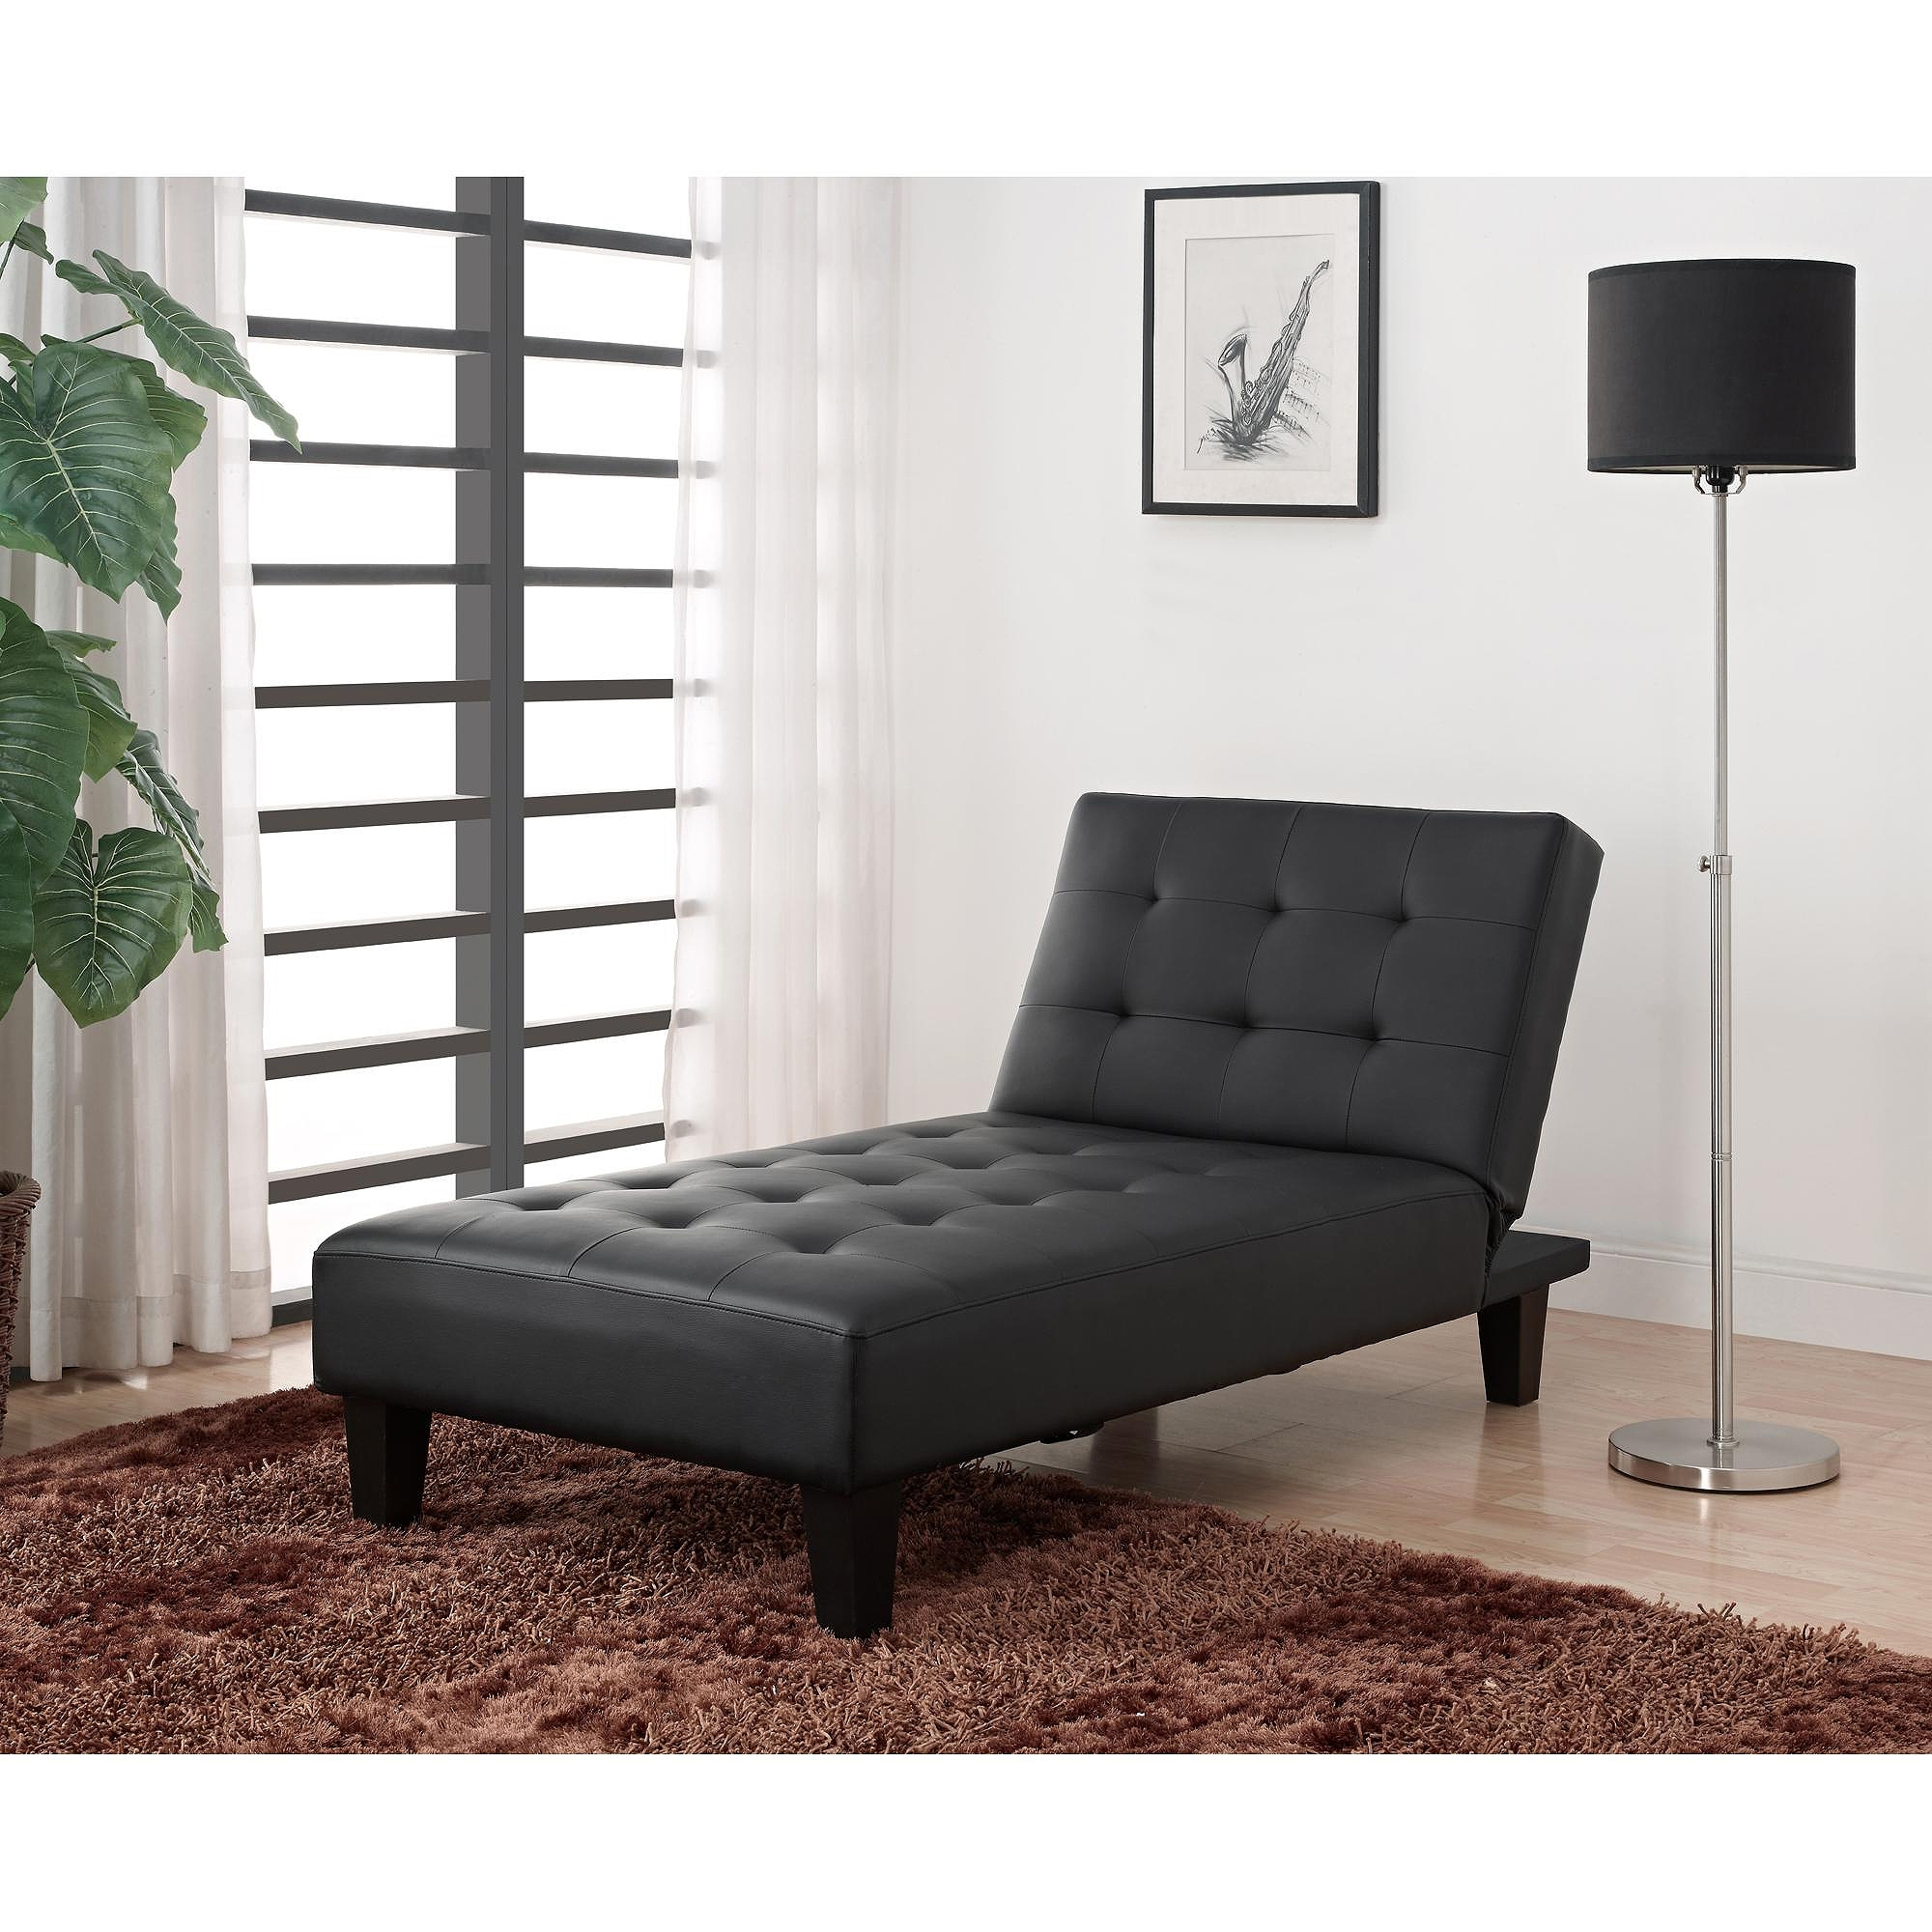 Favorite Futon Chaise Lounger – Bm Furnititure Regarding Emily Chaise Lounges (View 10 of 15)